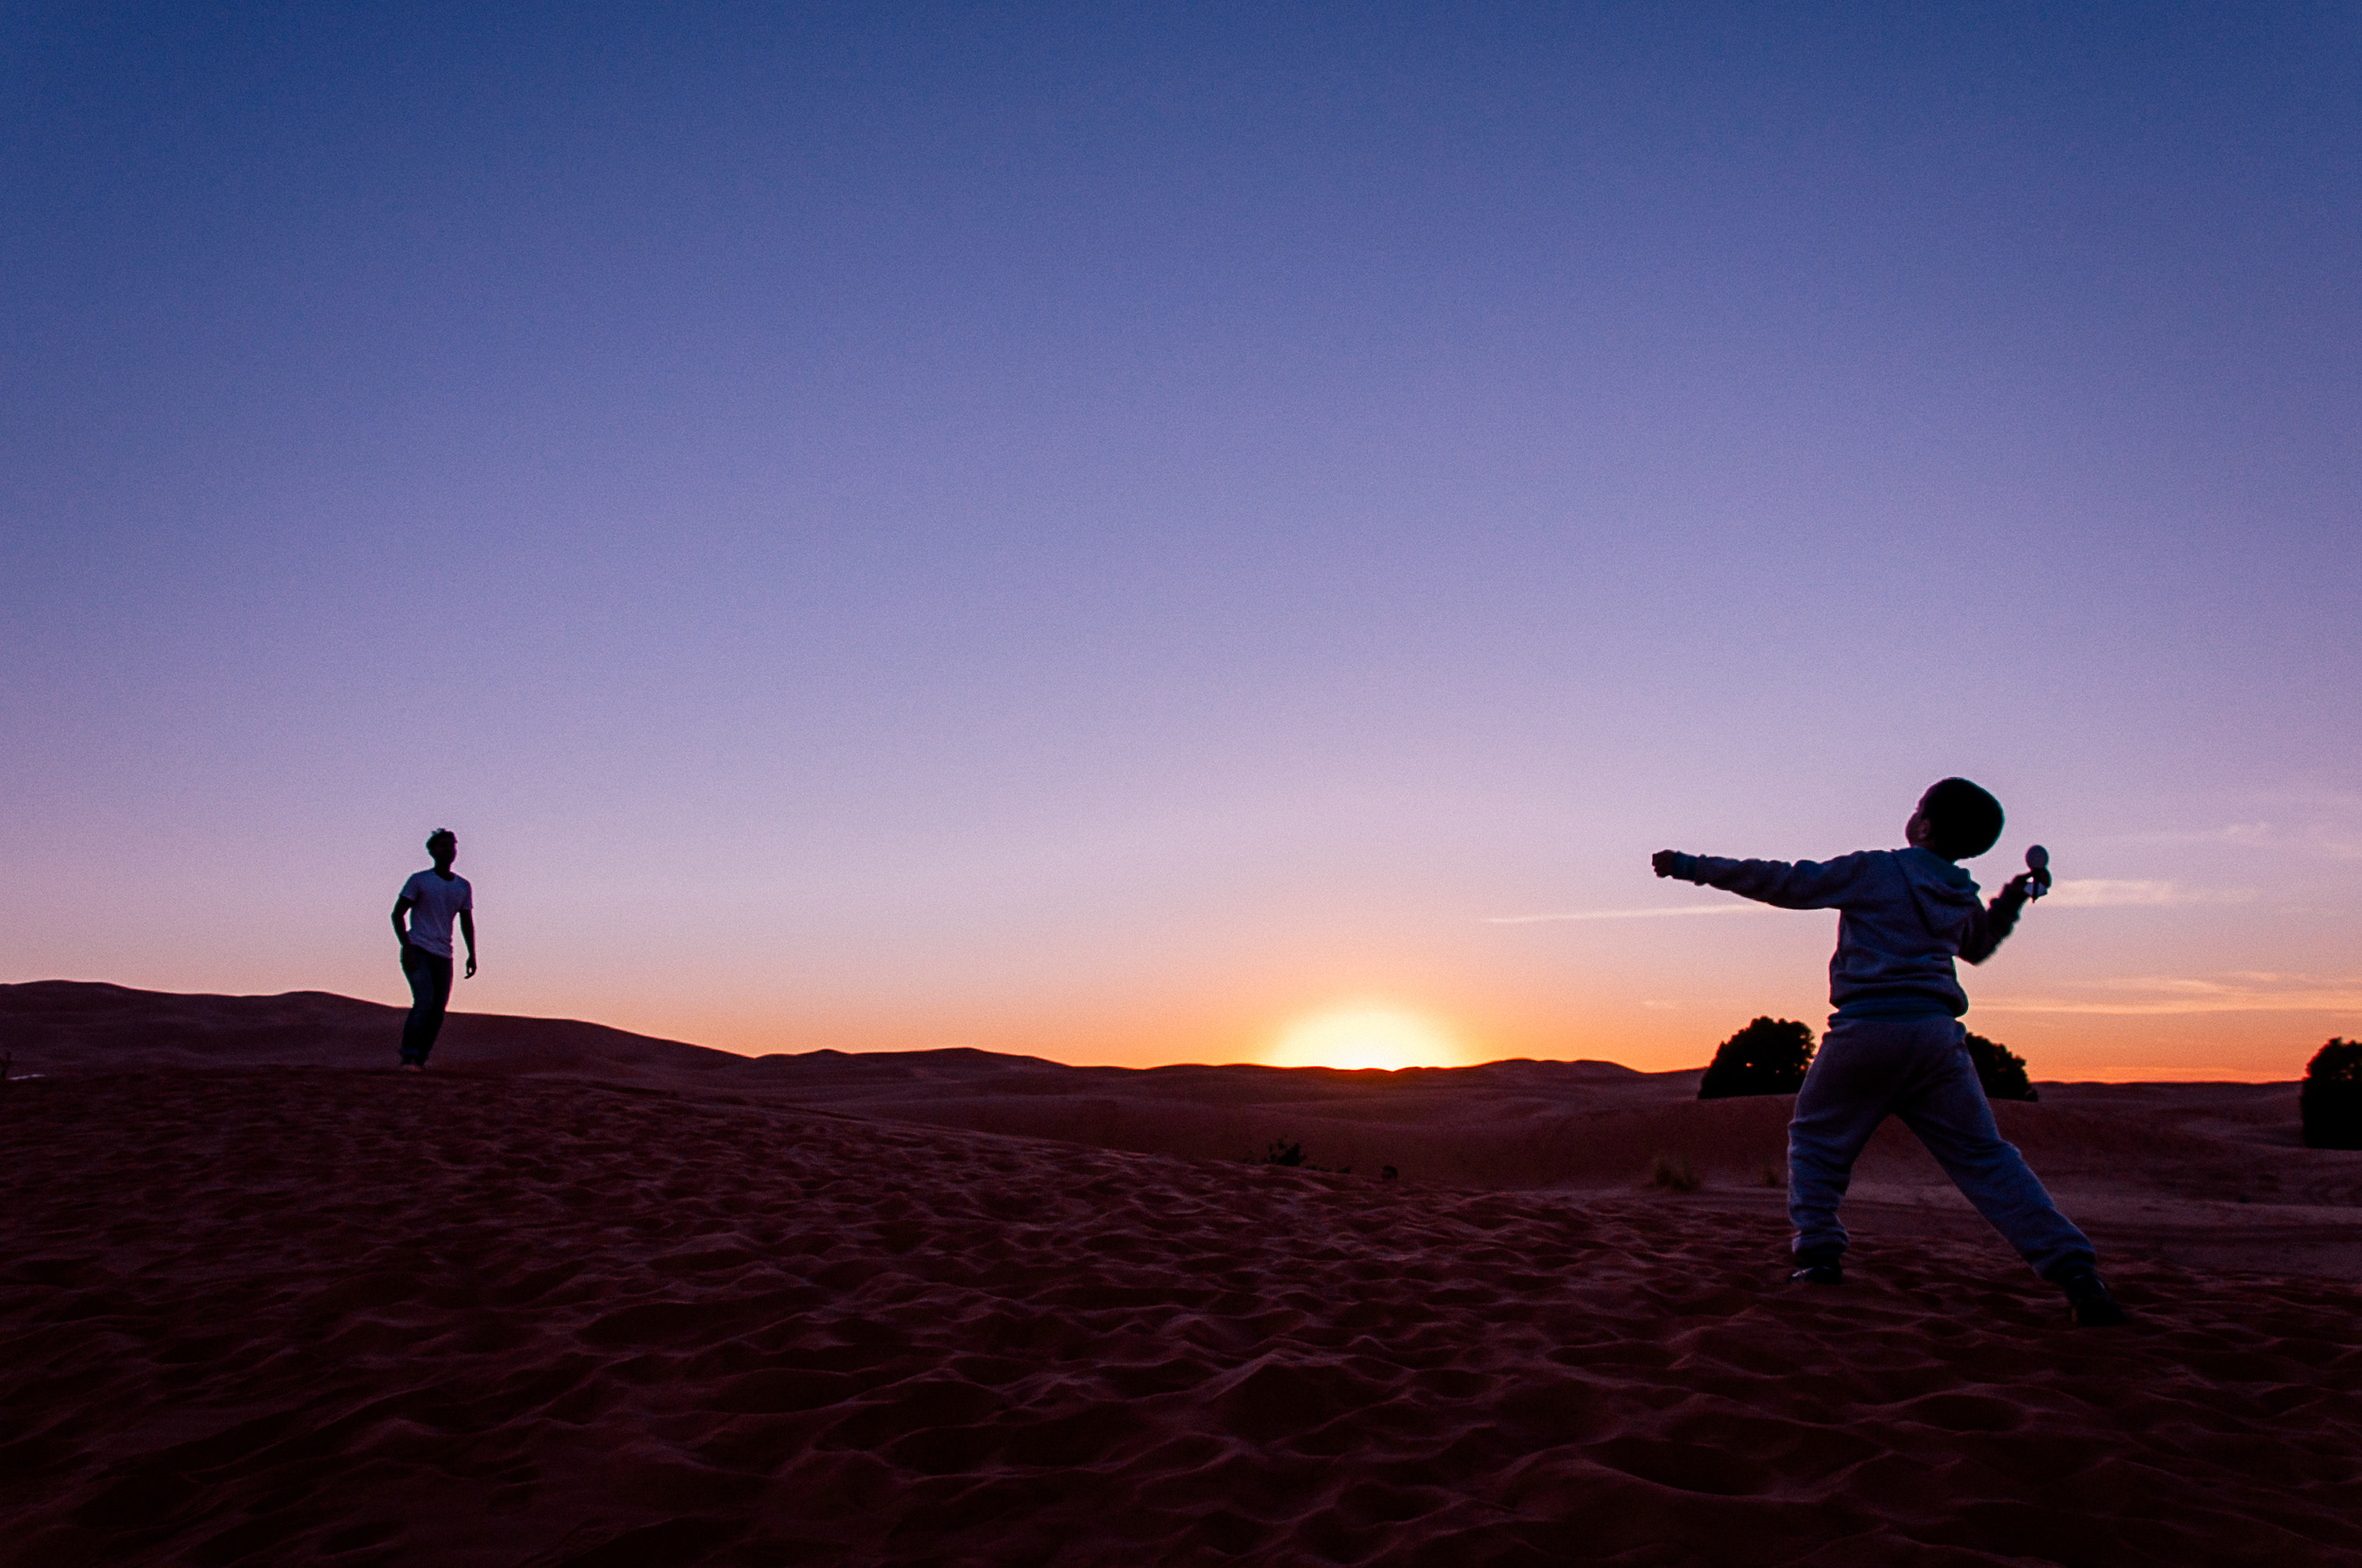 Before leaving the Sahara desert,we played catch with some of the local children.